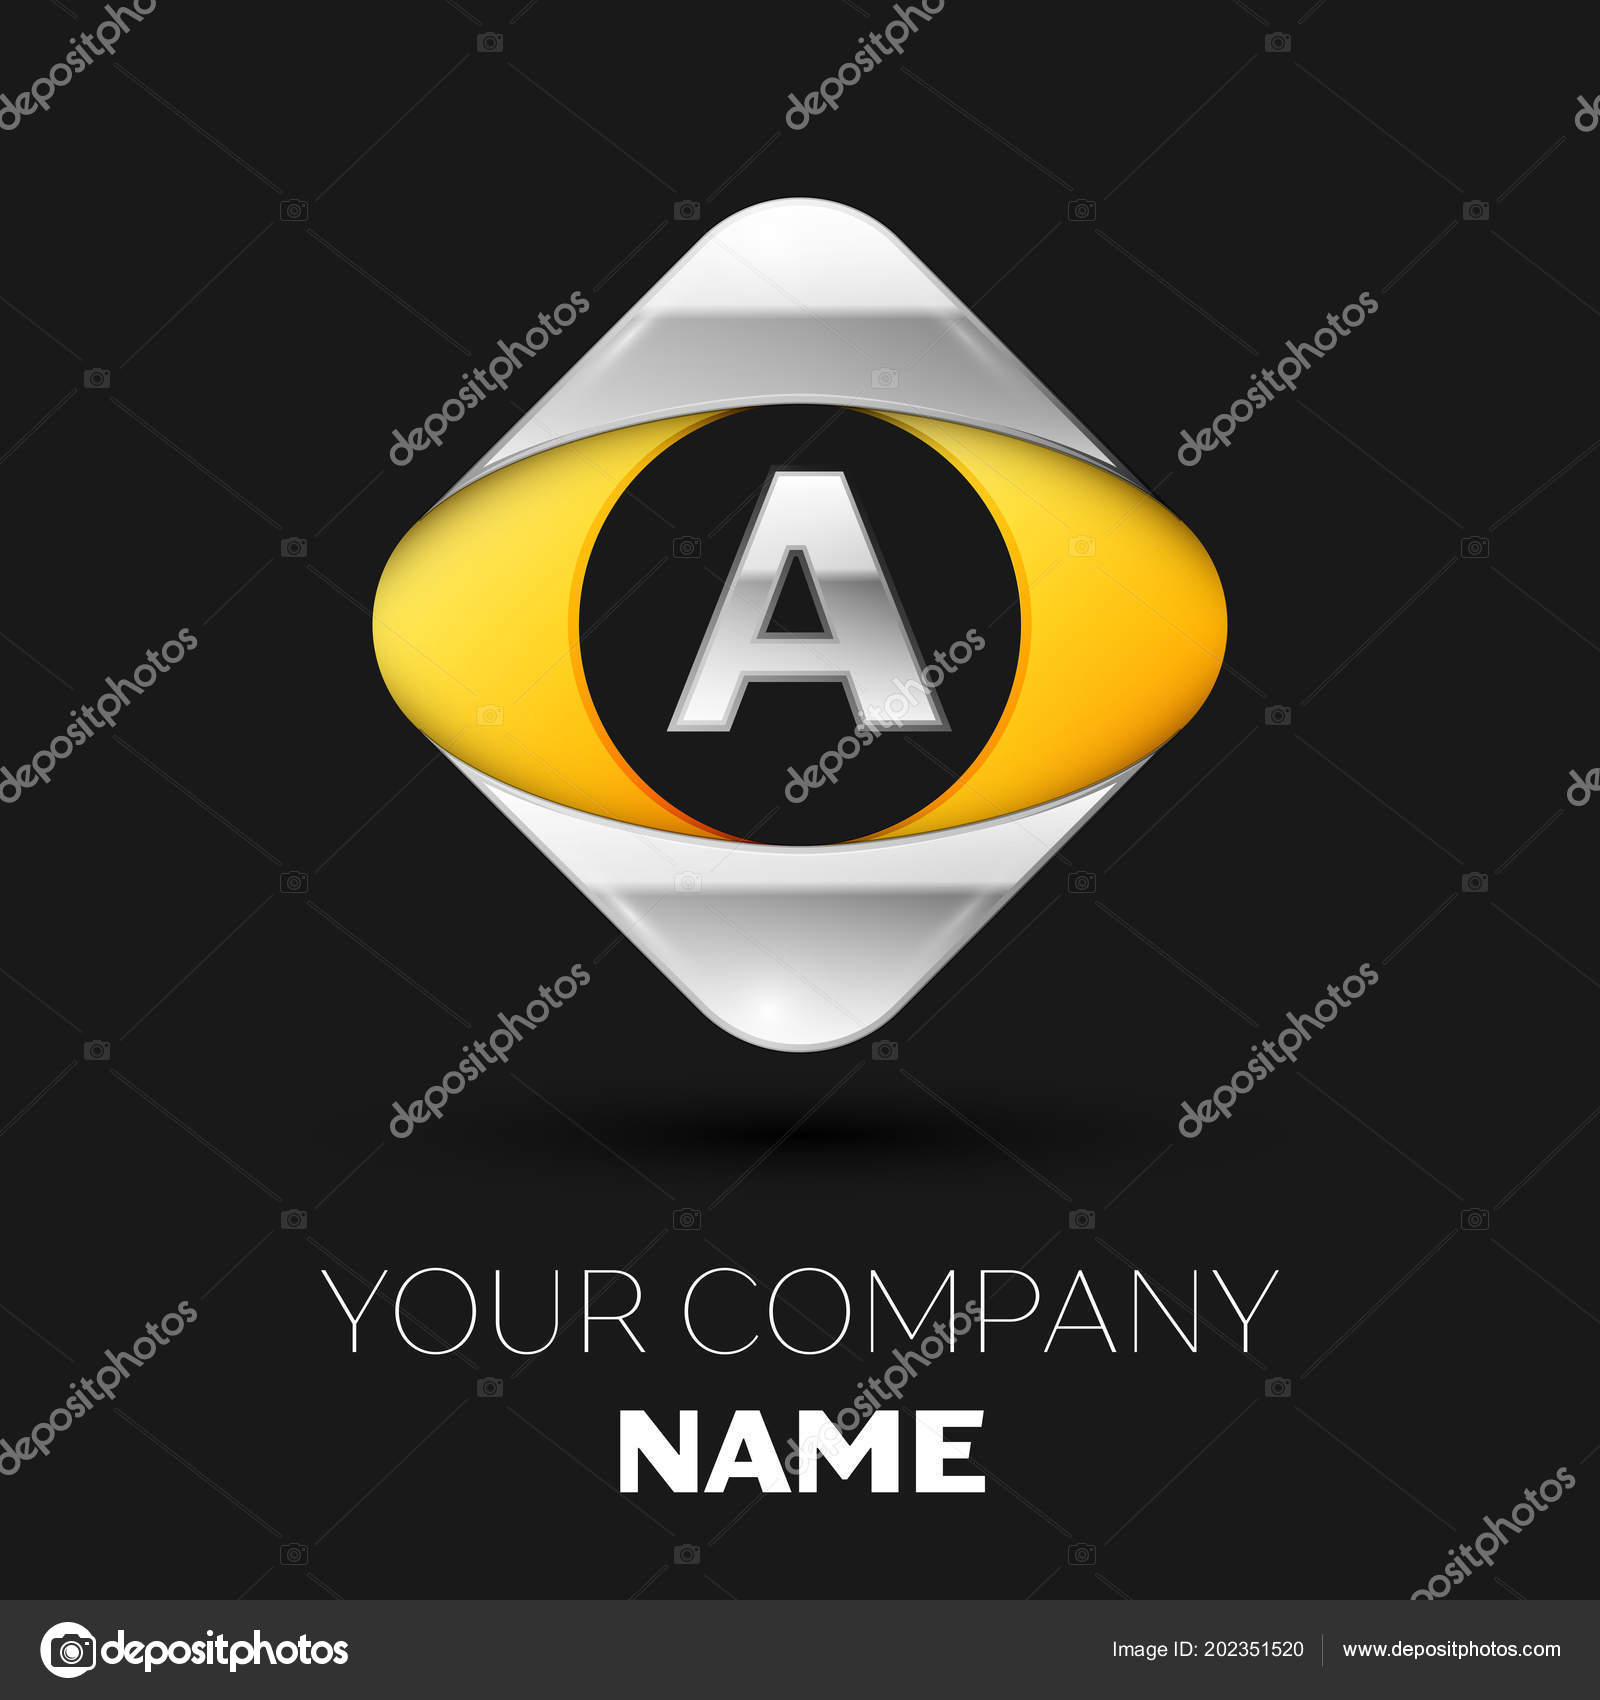 Realistic Silver Letter A Logo Symbol In The Colorful Silver Yellow